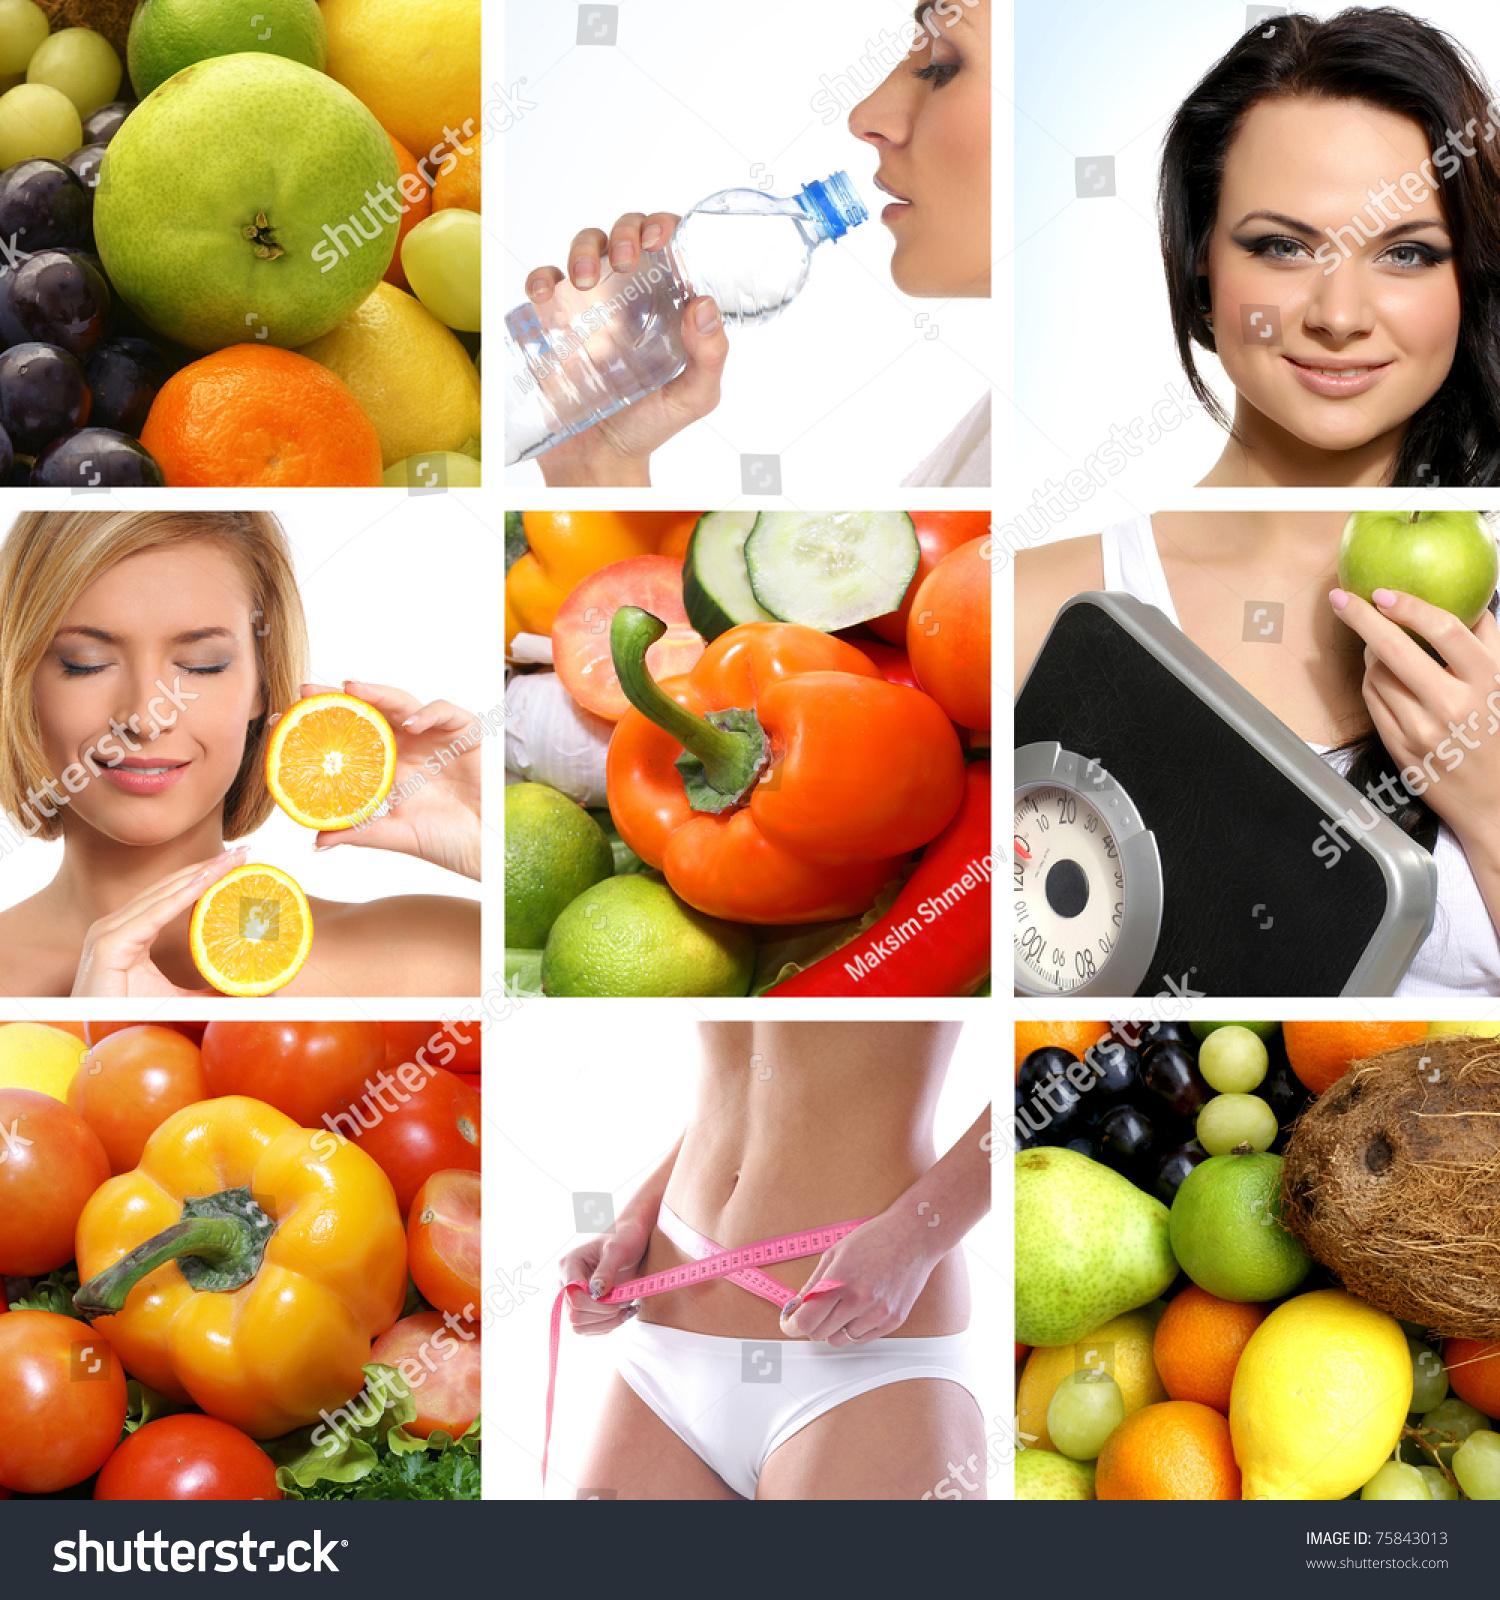 Eating and health - Beautiful Collage About Dieting Healthy Eating And Health Care